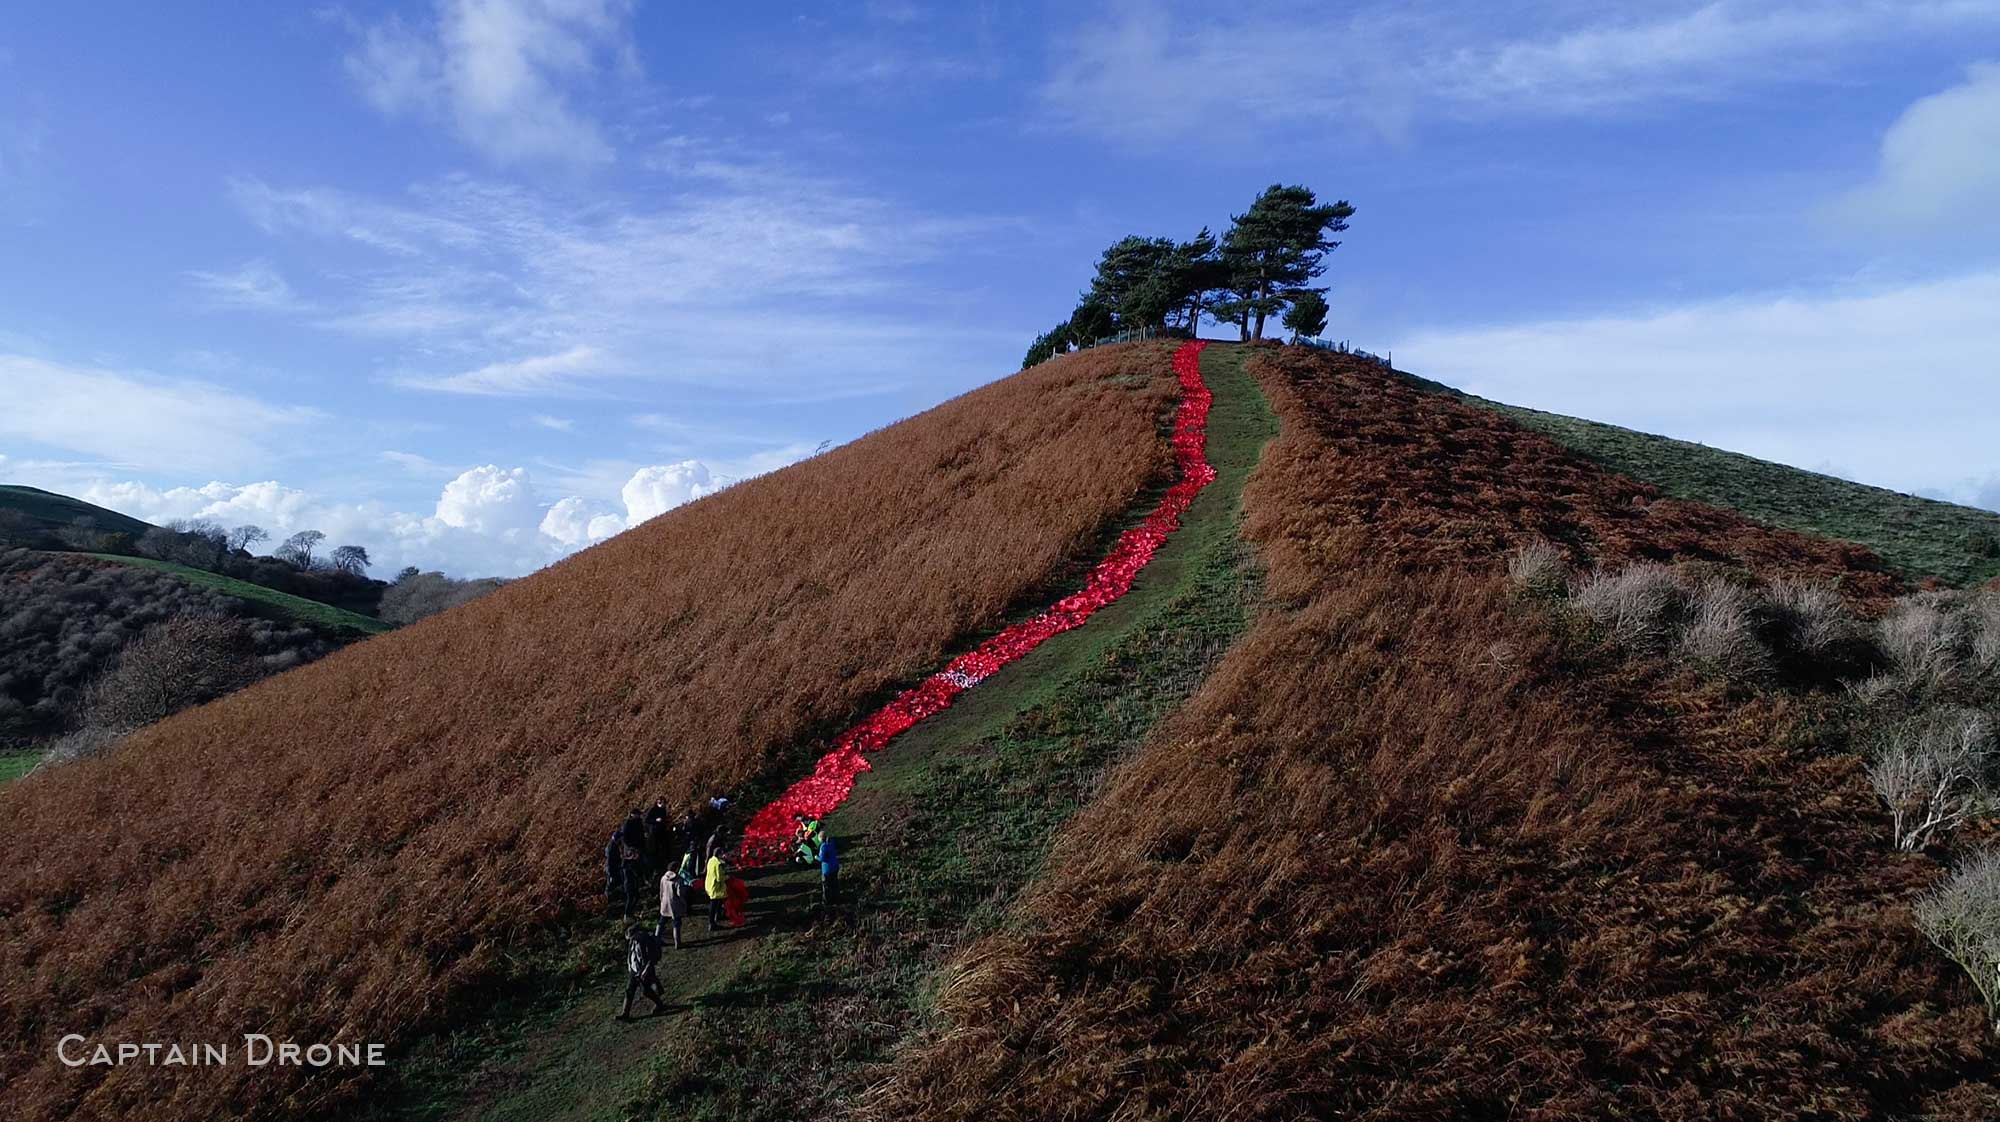 The River Of Poppies Event On Colmer's Hill